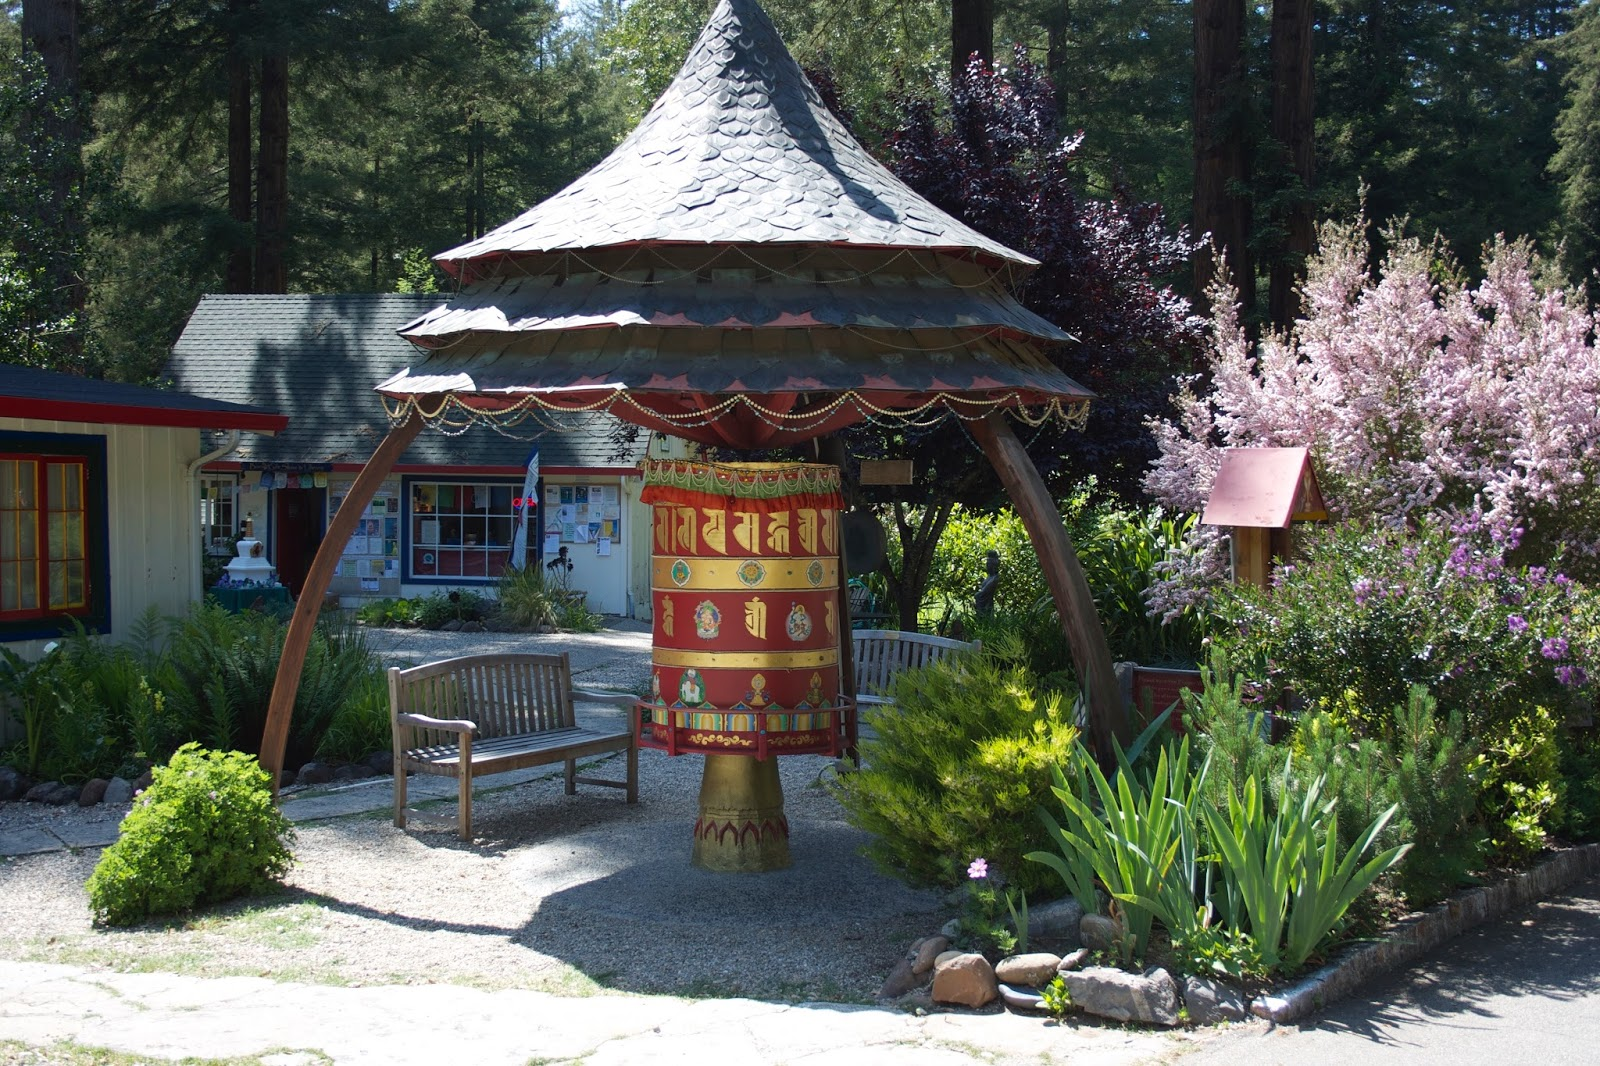 buddhist single men in santa cruz Retreats the gay buddhist fellowship's 27th annual fall retreat will be held on the last  nestled among redwoods and streams in the santa cruz mountains near.